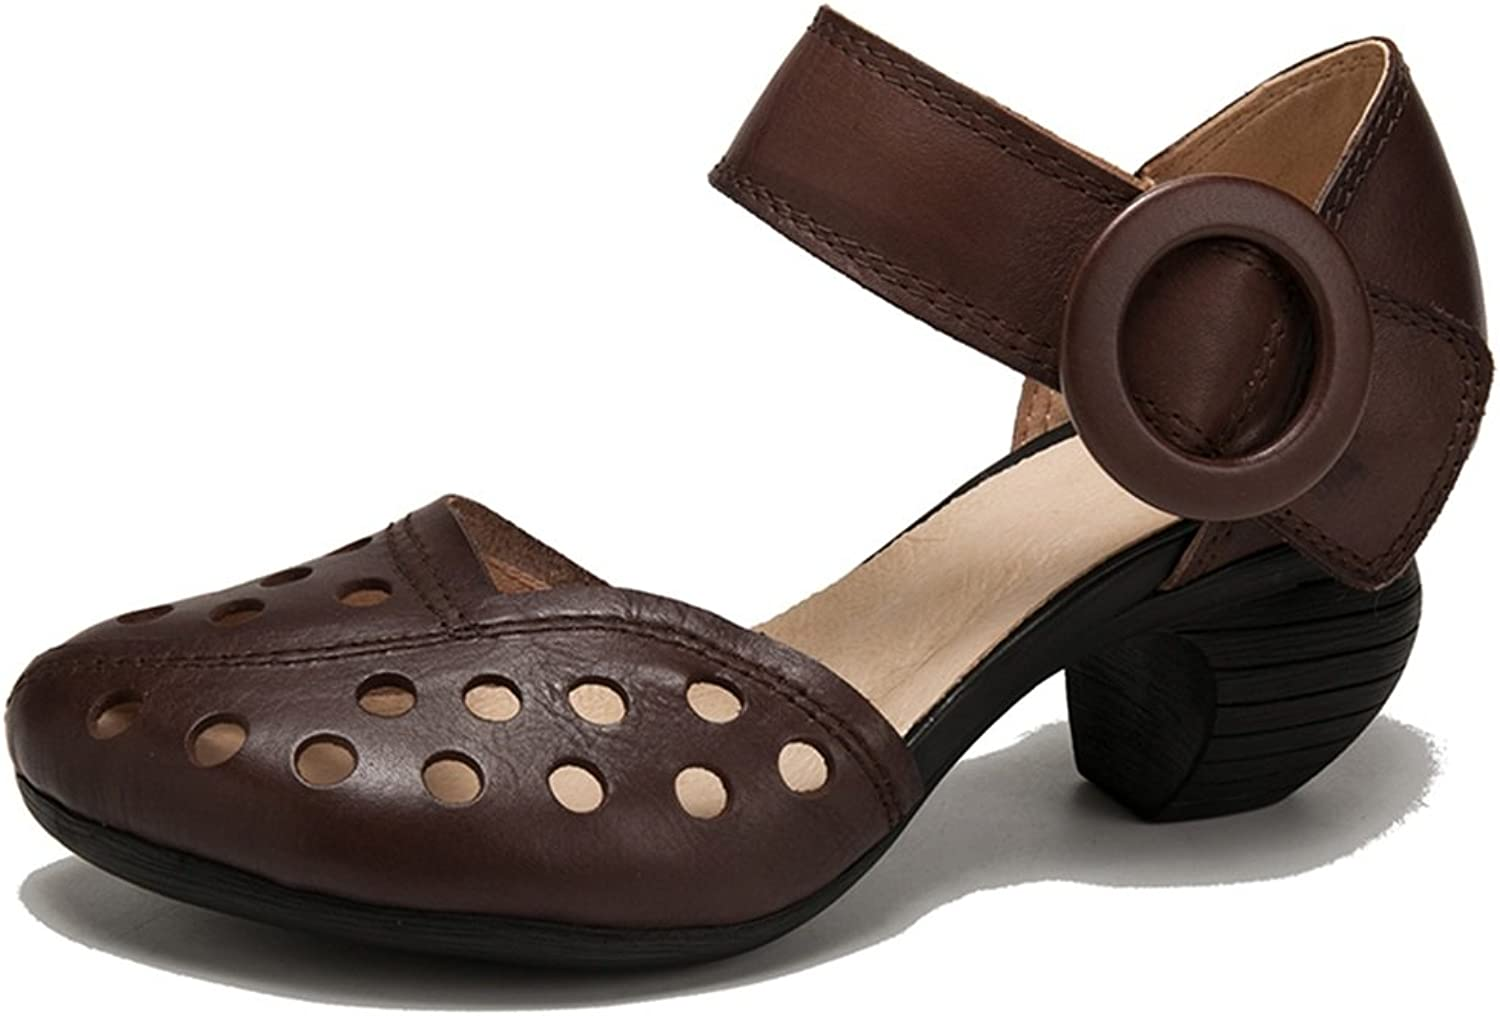 Women's shoes Leather Spring Summer Roman shoes Ladies Hollow-Out Sandals Heteredypic Heel for Brown, Coffee